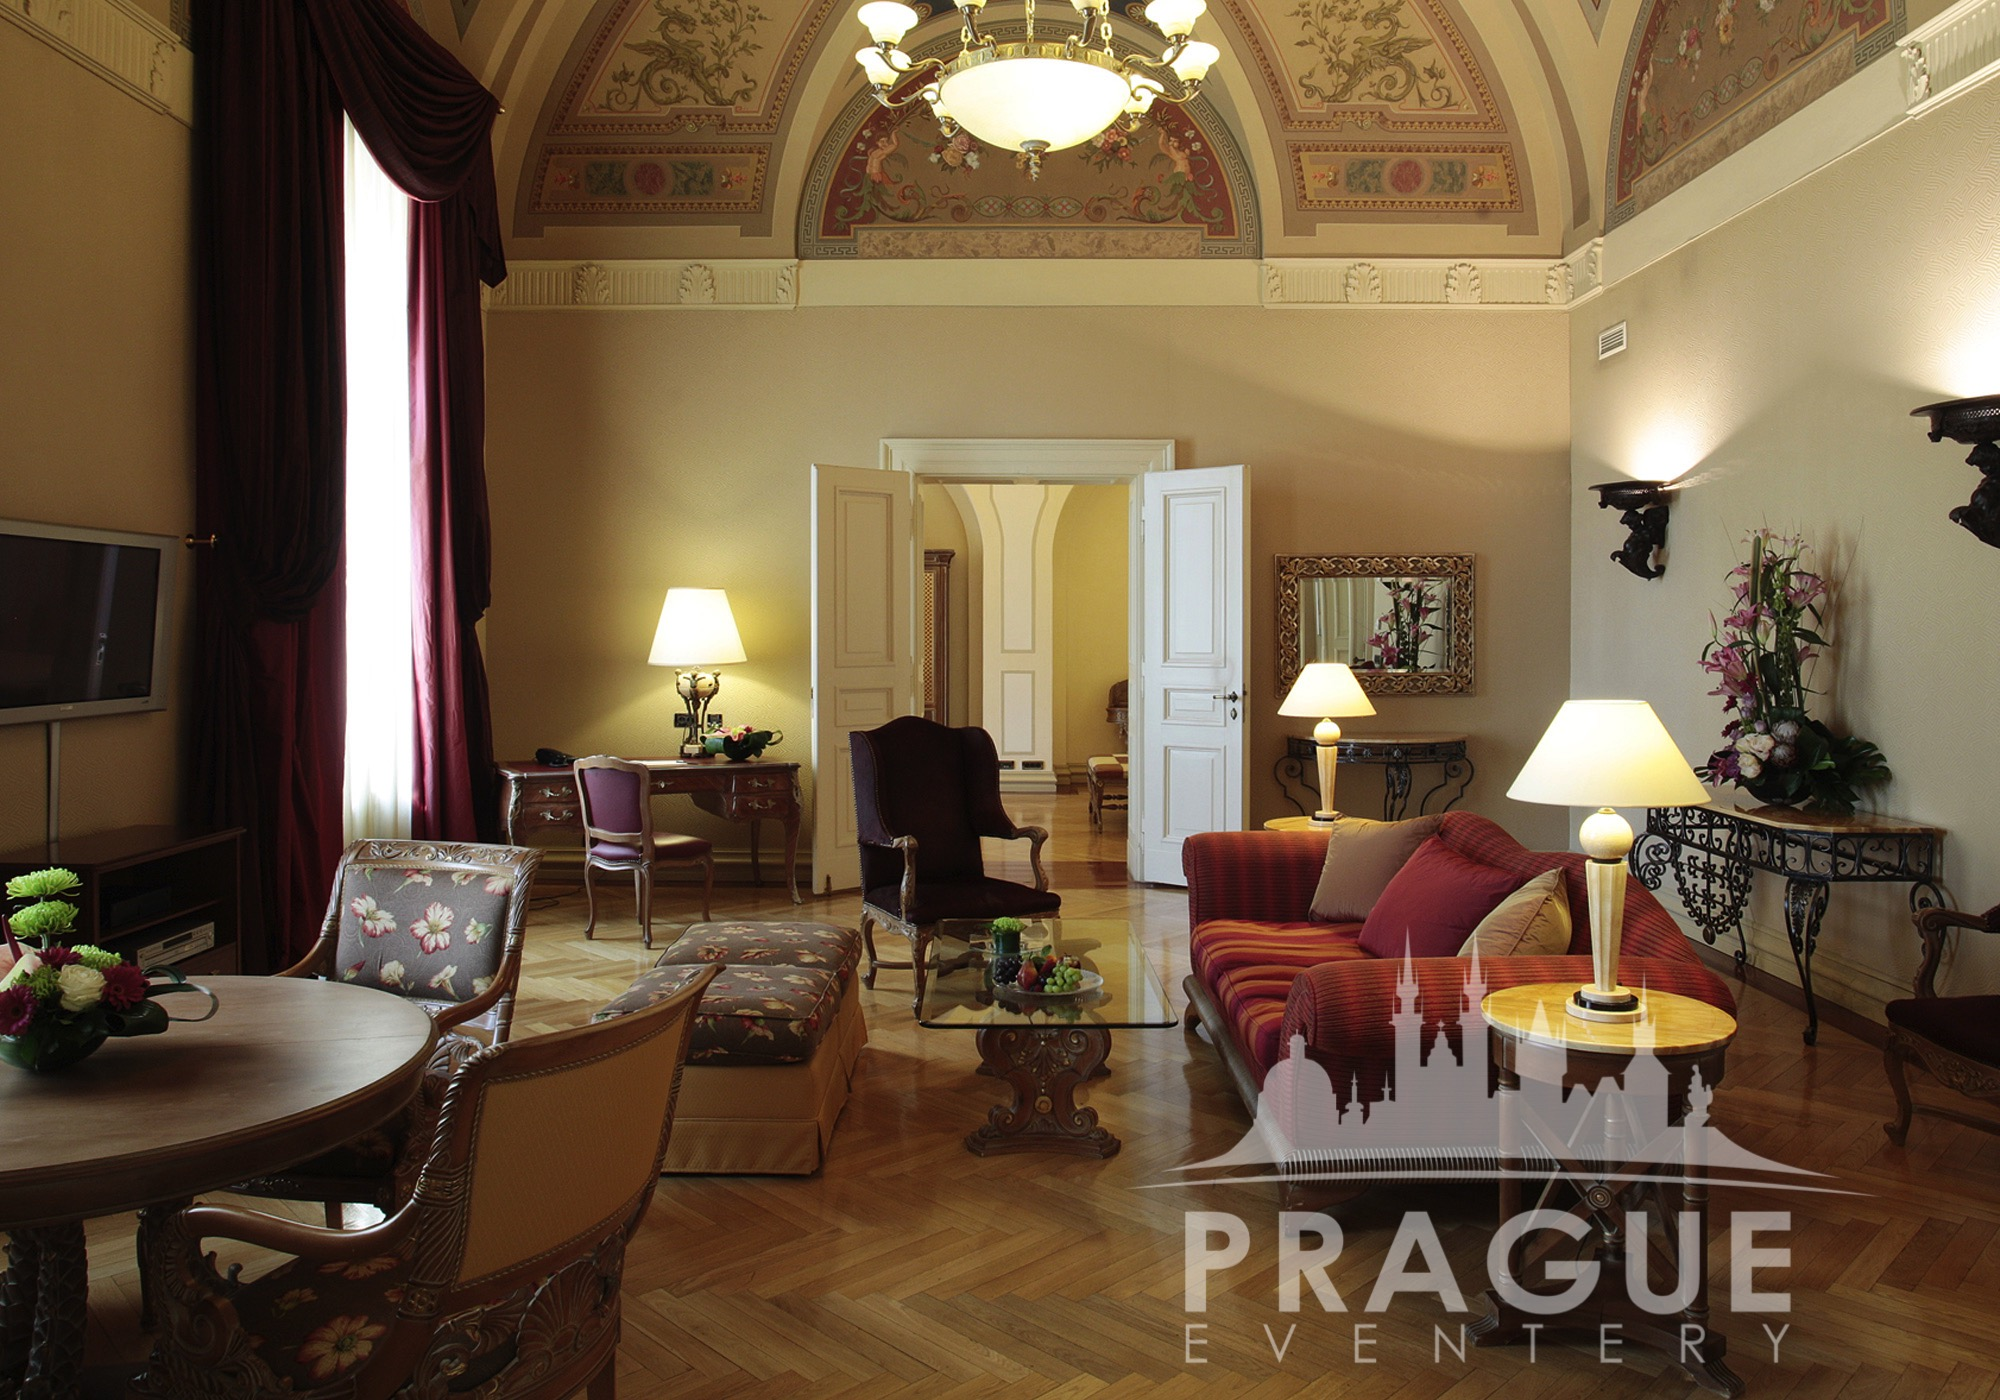 Boscolo hotel prague prague eventery congress hotel prague for Designer hotel prague